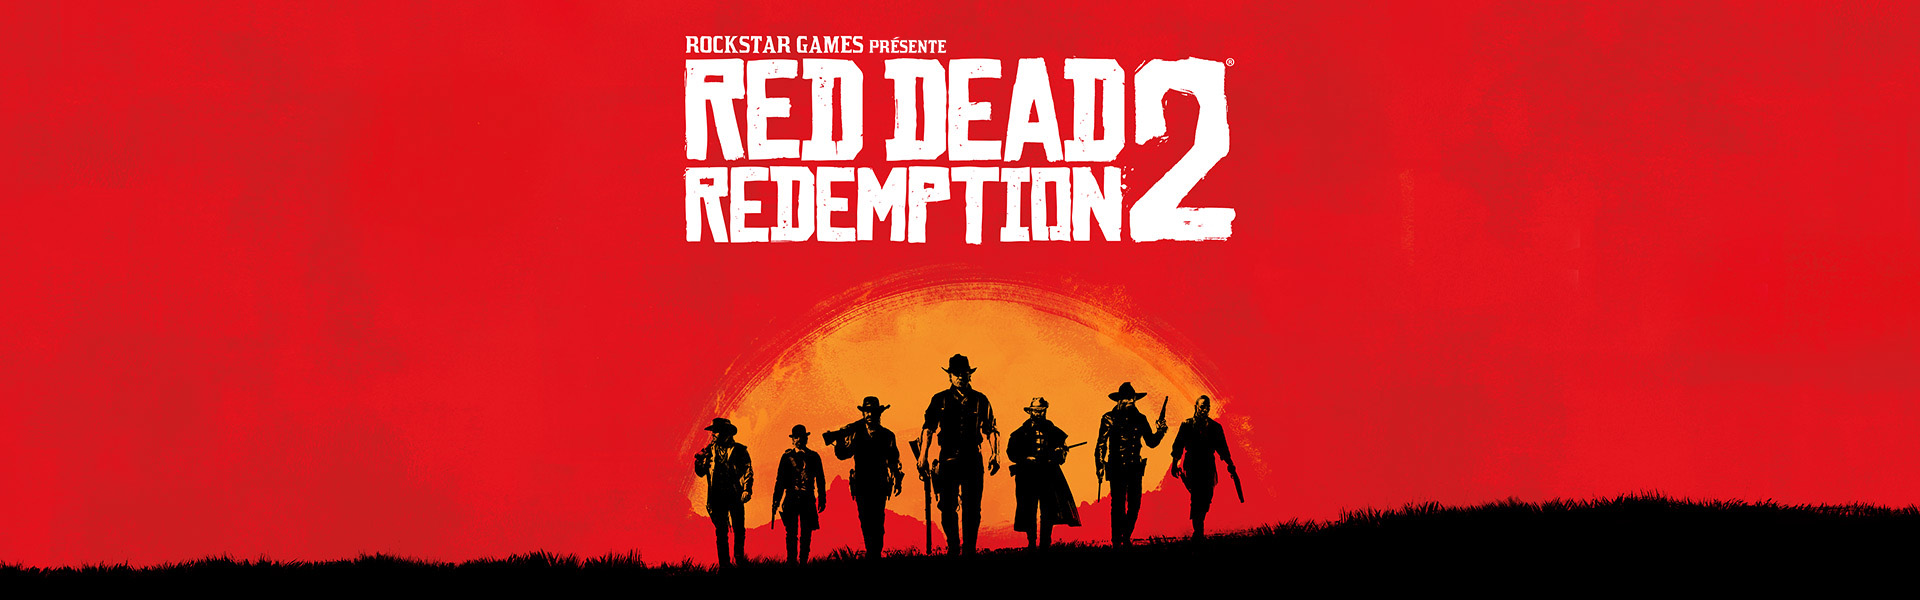 Red Dead Redemption 2 : The Hero